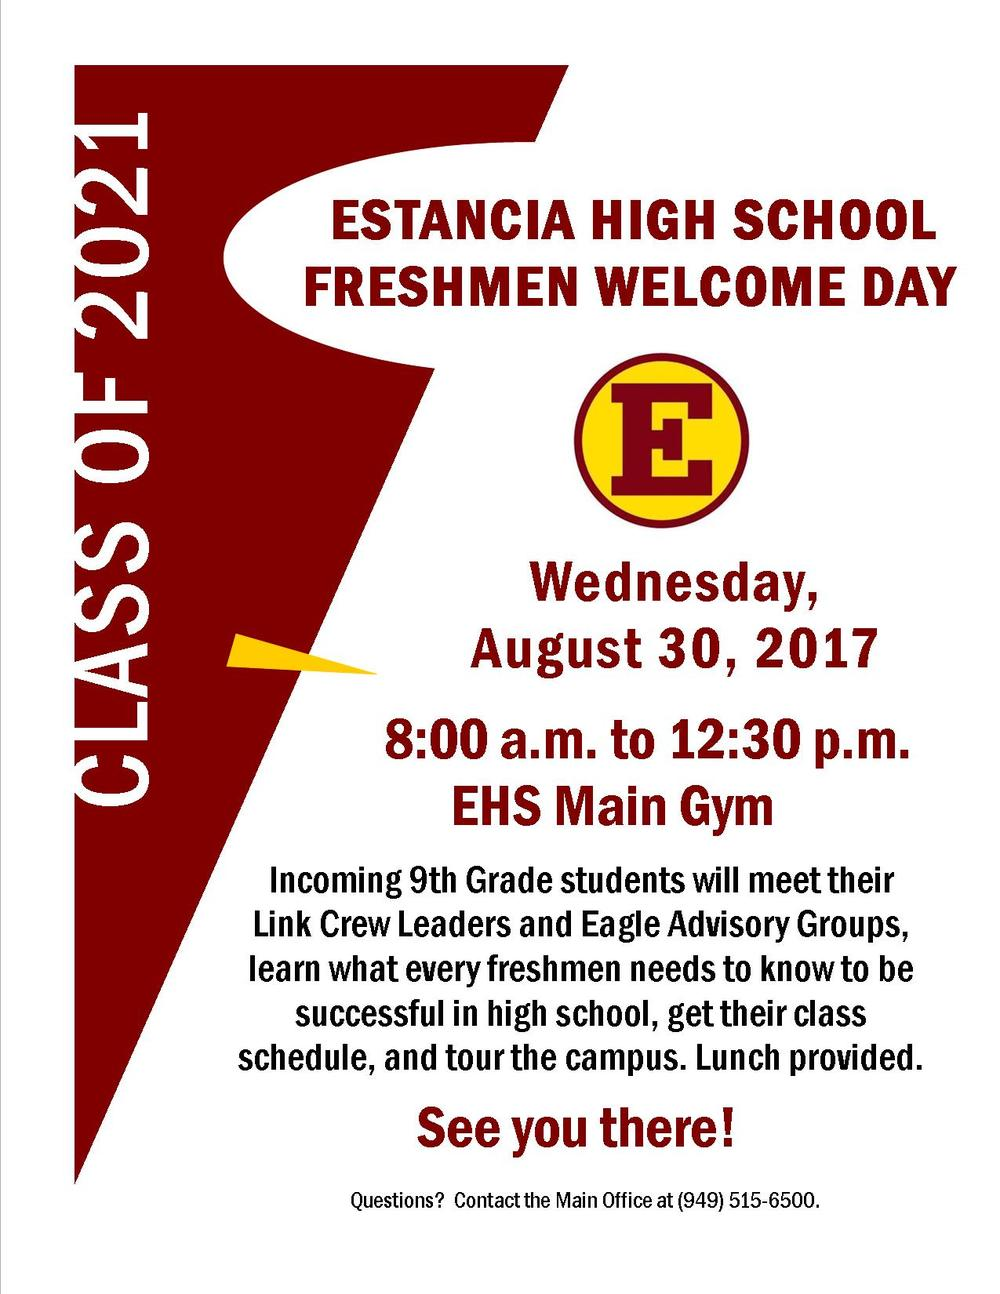 Freshmen Welcome Day for the Class of 2020 will be on Wednesday, August 30 from 8 a.m. to 12 30 p.m. in the EHS Main Gym.  Incoming 9th grade students will meet their Link Crew Leaders and Eagle Advisory Groups, learn what every freshmen needs to know to be successful in high school, get their class schedule, and tour the campus.  Lunch will be provided.  See you there!